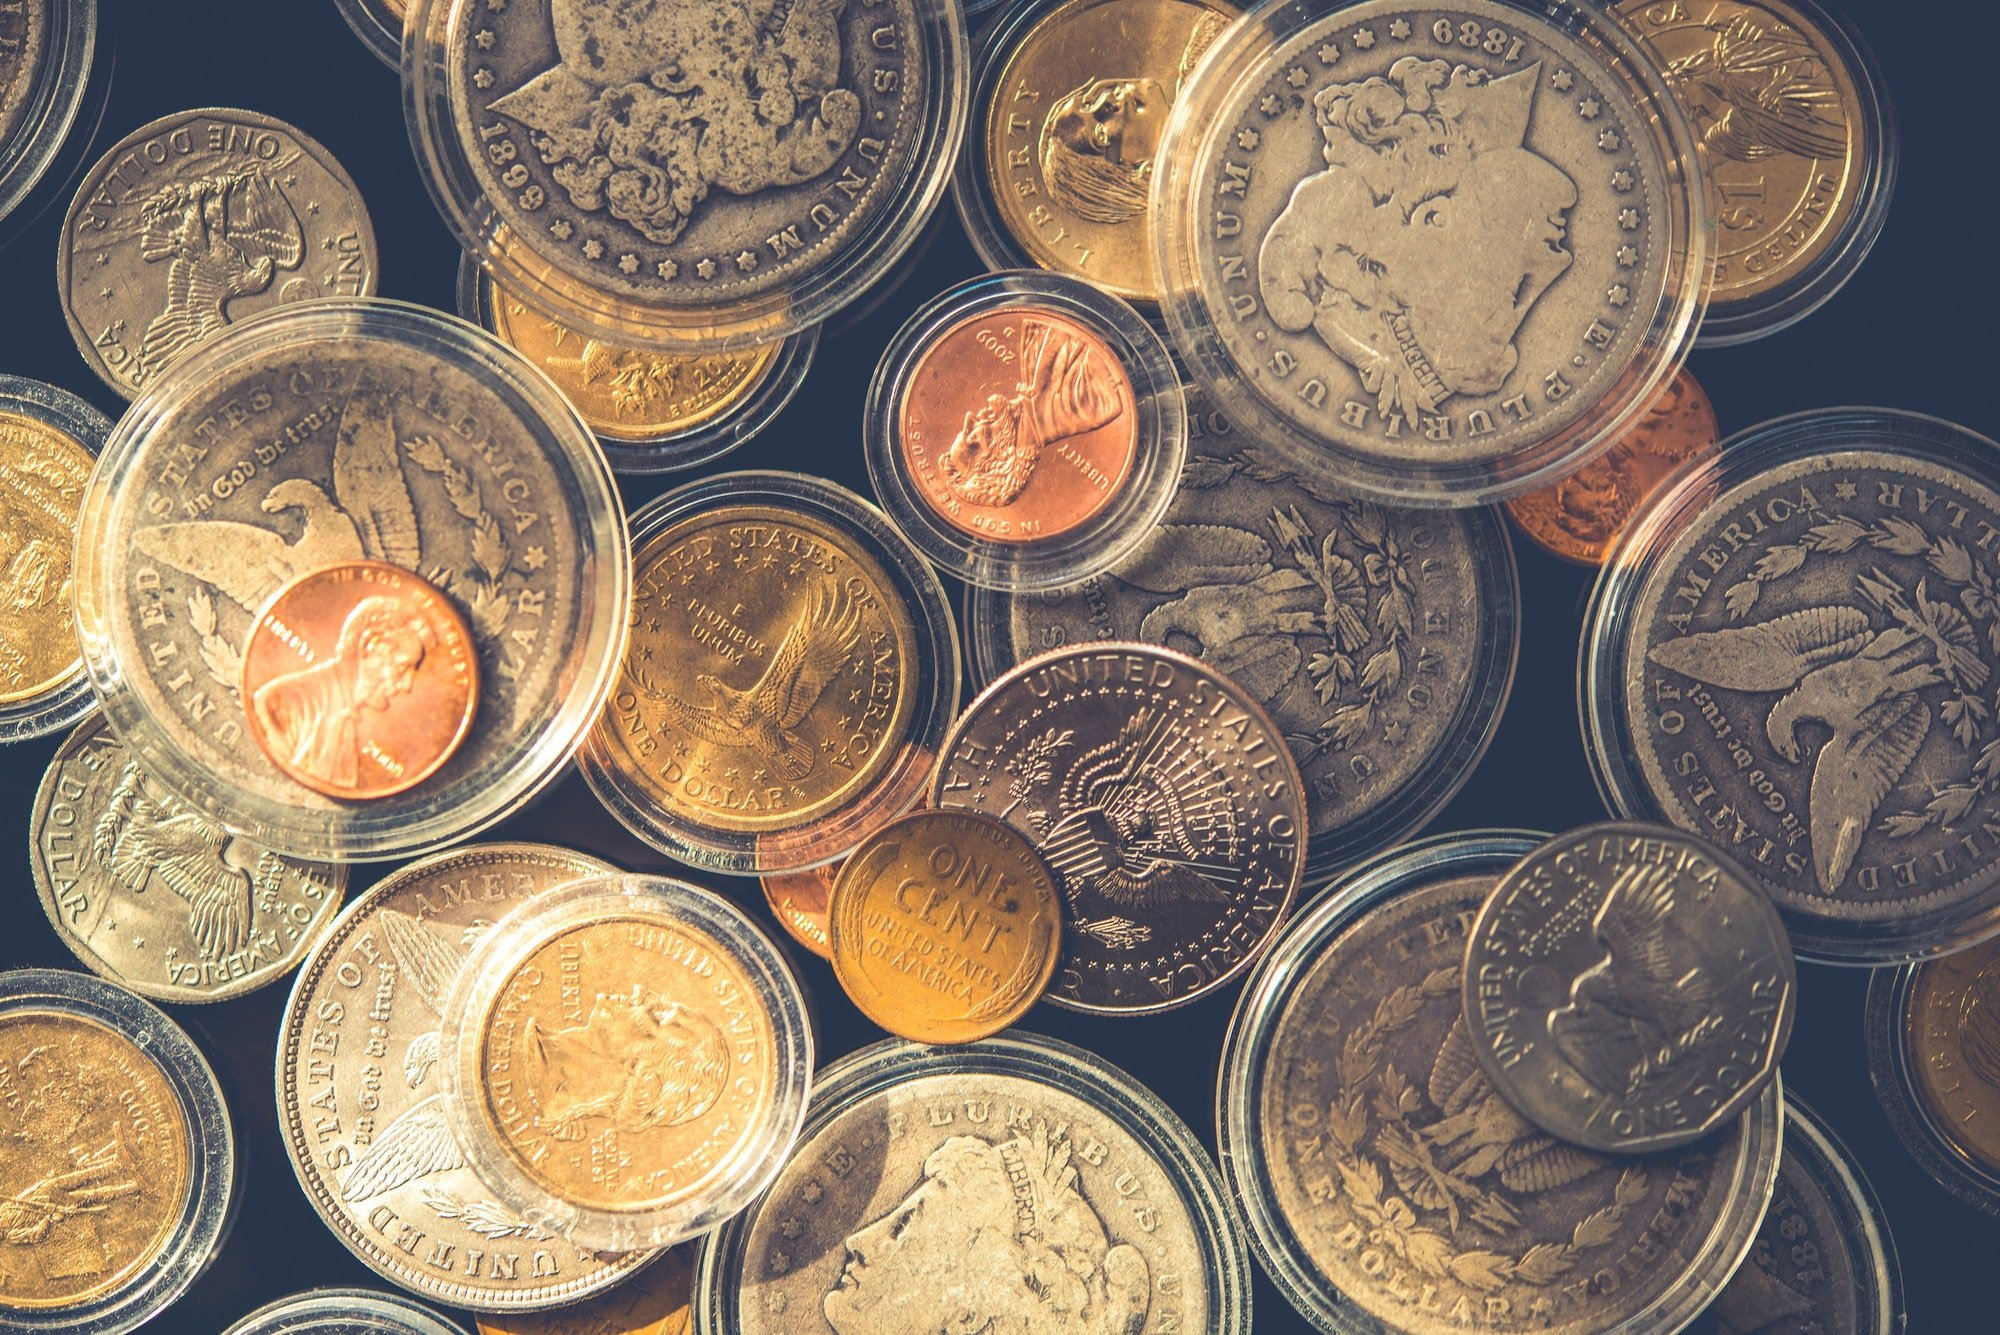 Plenty of Collectible Coins